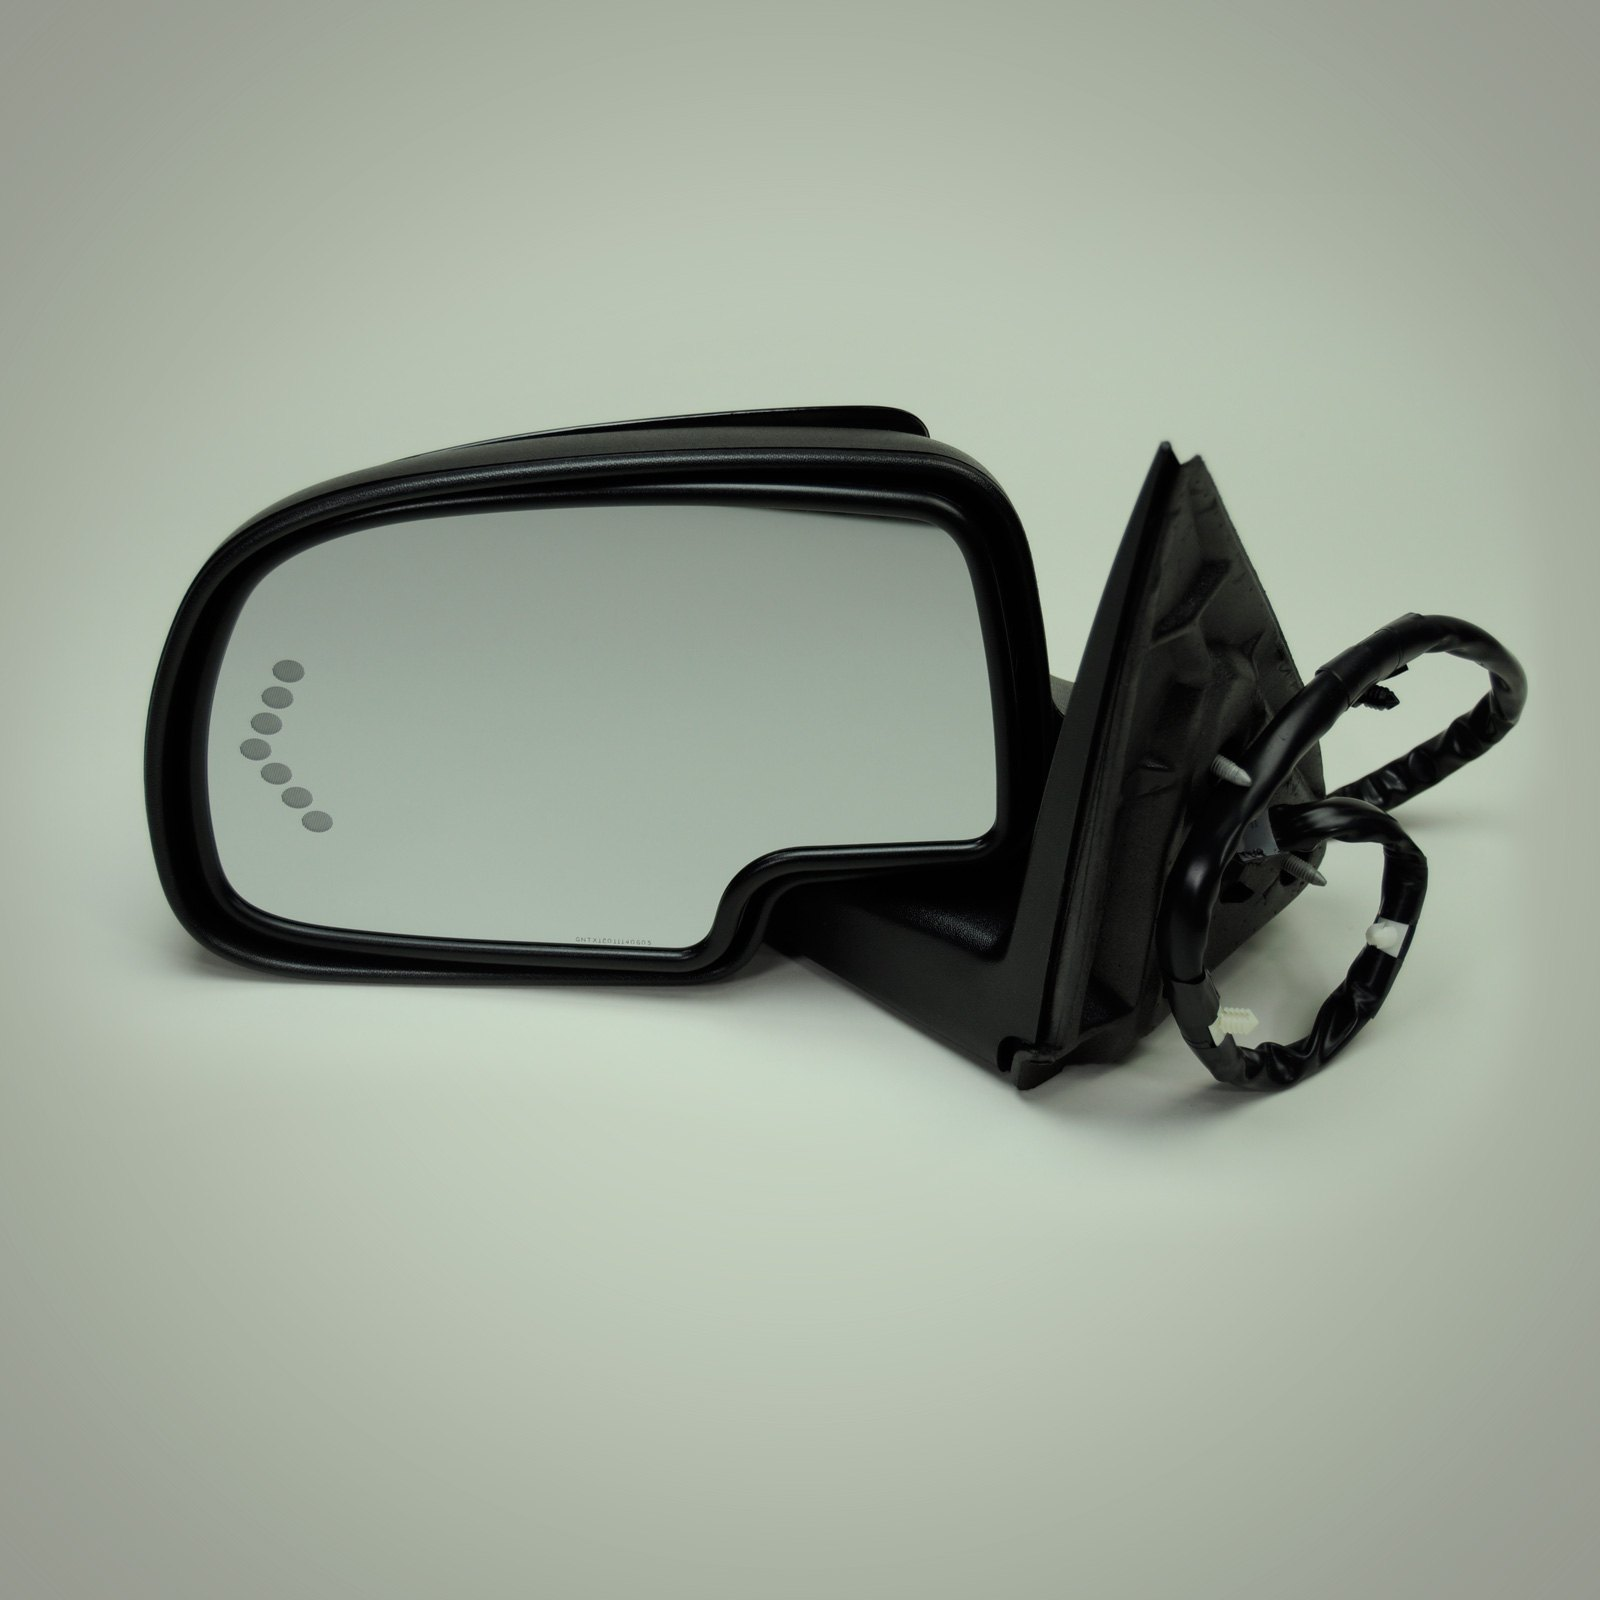 used 01 02 gmc yukon xl denali driver side power mirror by replace ebay. Black Bedroom Furniture Sets. Home Design Ideas